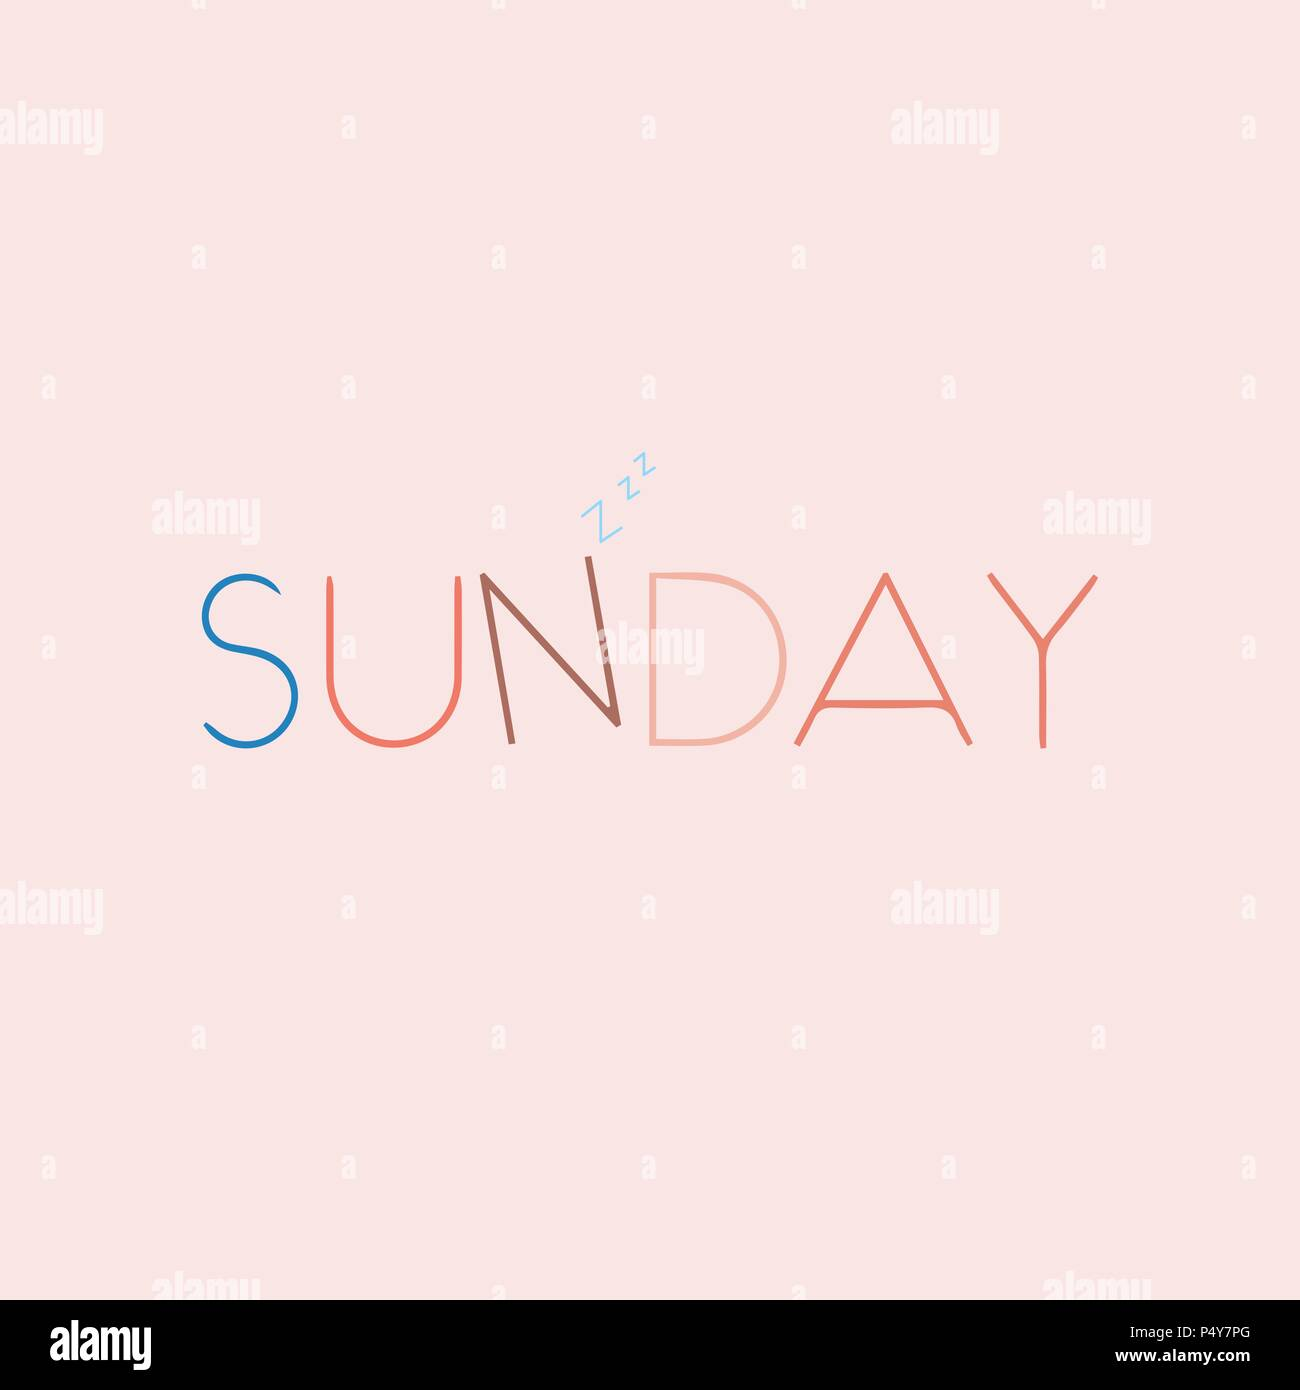 Sunday Beautiful lettering. Vector illustration of the text. Gentle pink background. - Stock Vector